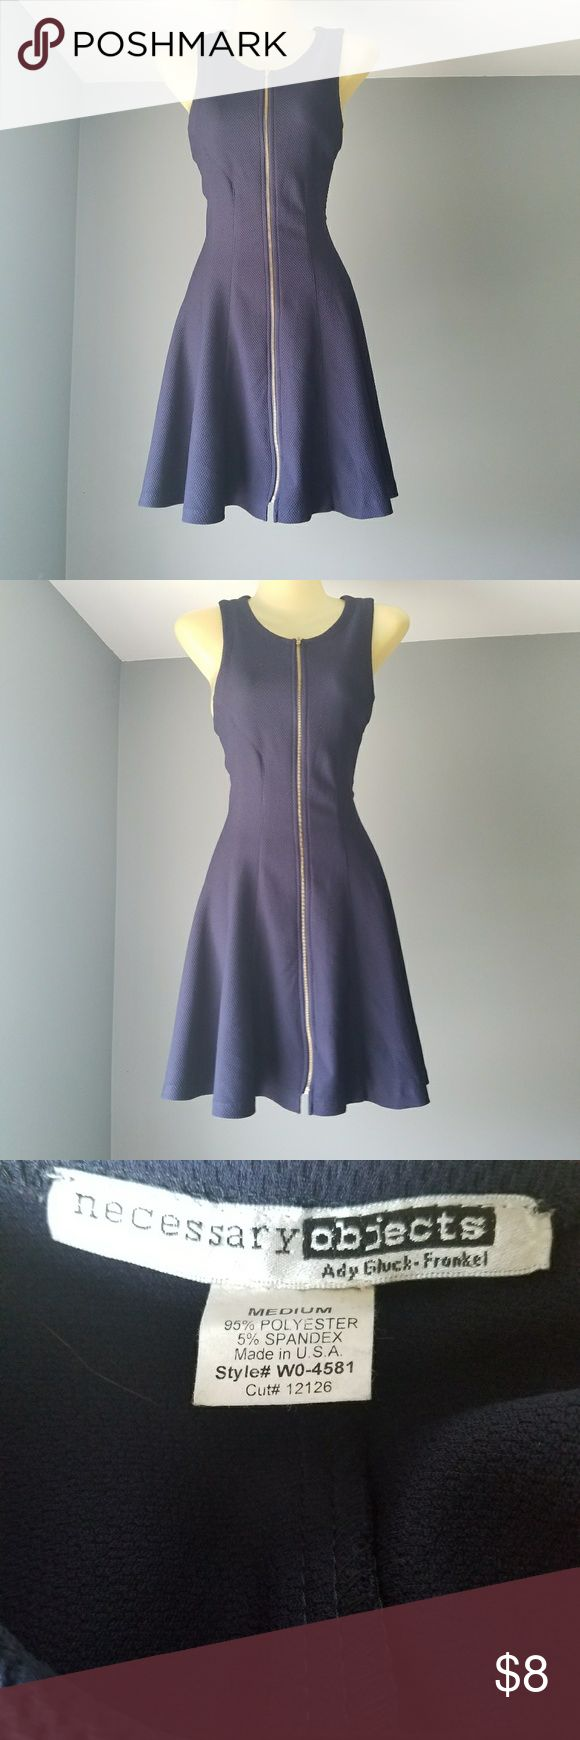 Necessary Objects Blue zip up dress Size medium. 95% polyester. 5% spandex Necessary Objects Dresses